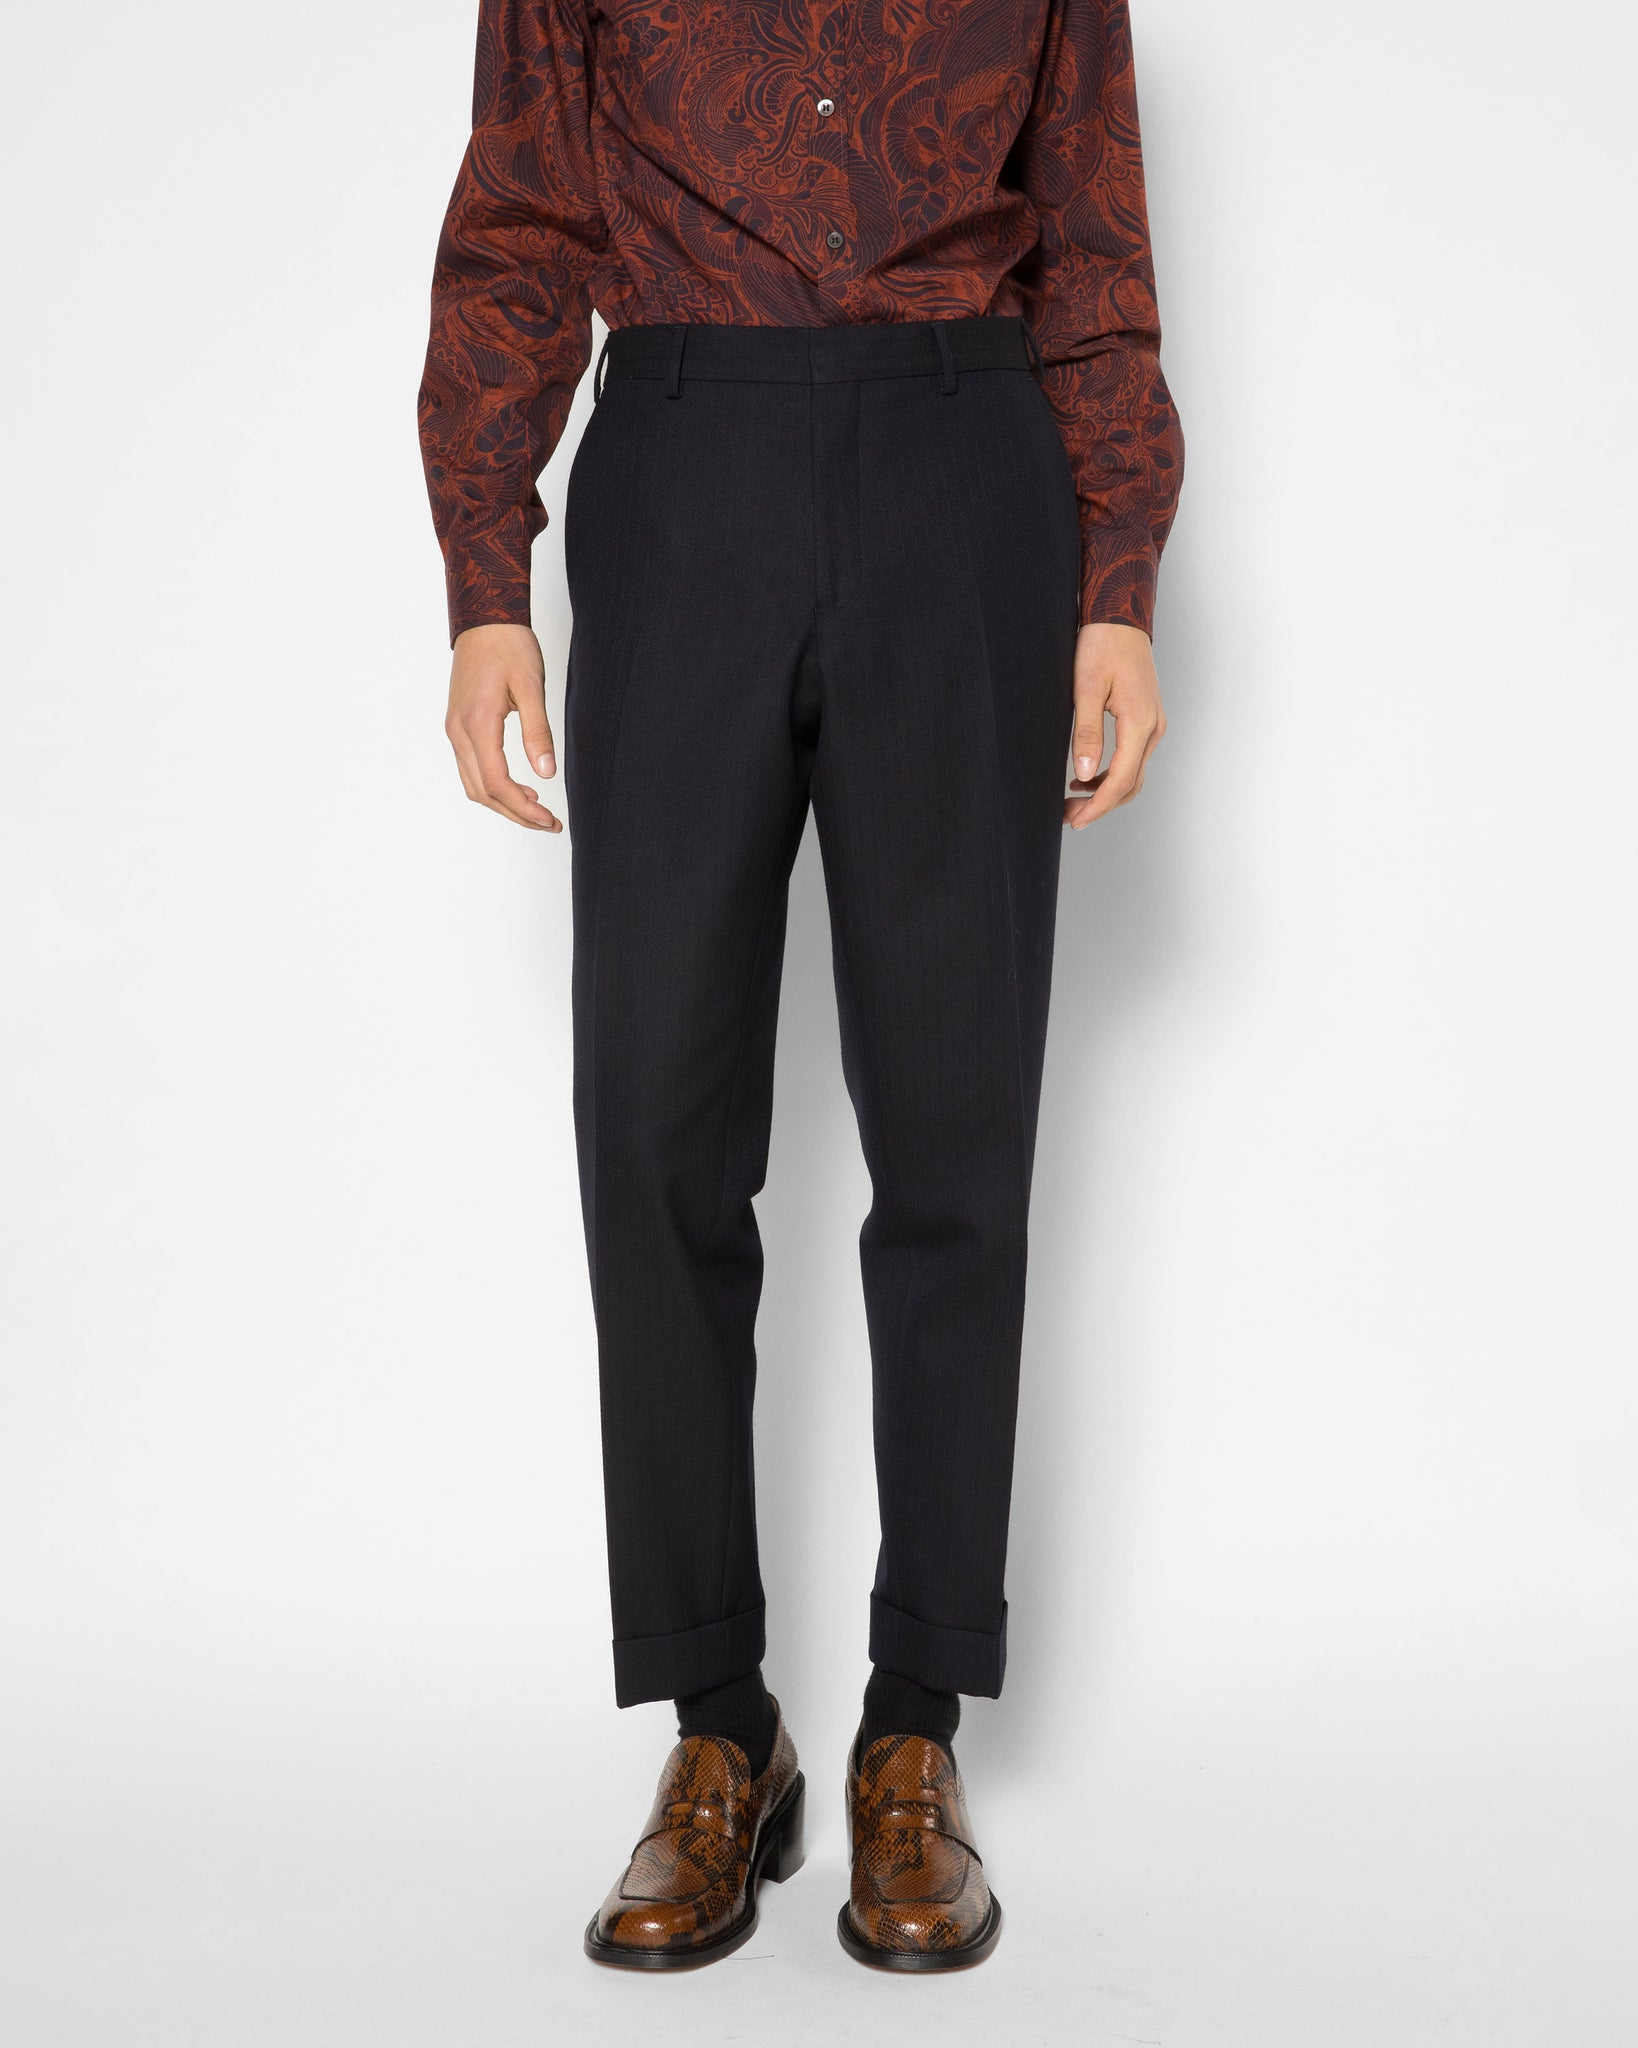 PHILIP tapered trouser